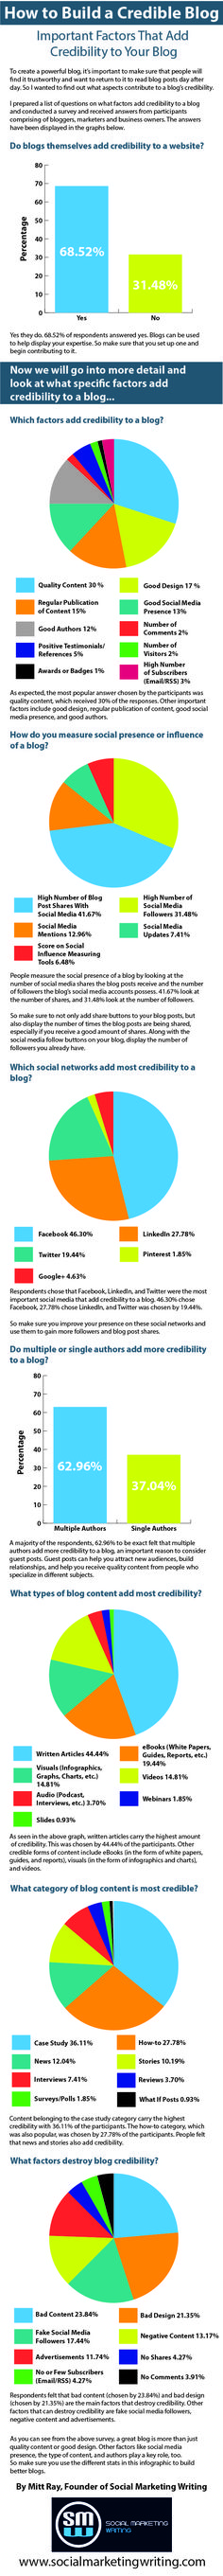 How to Build a Credible Blog [Infographic] http://socialmarketingwriting.com/how-to-build-a-credible-blog-infographic/ #blogging #socialmedia